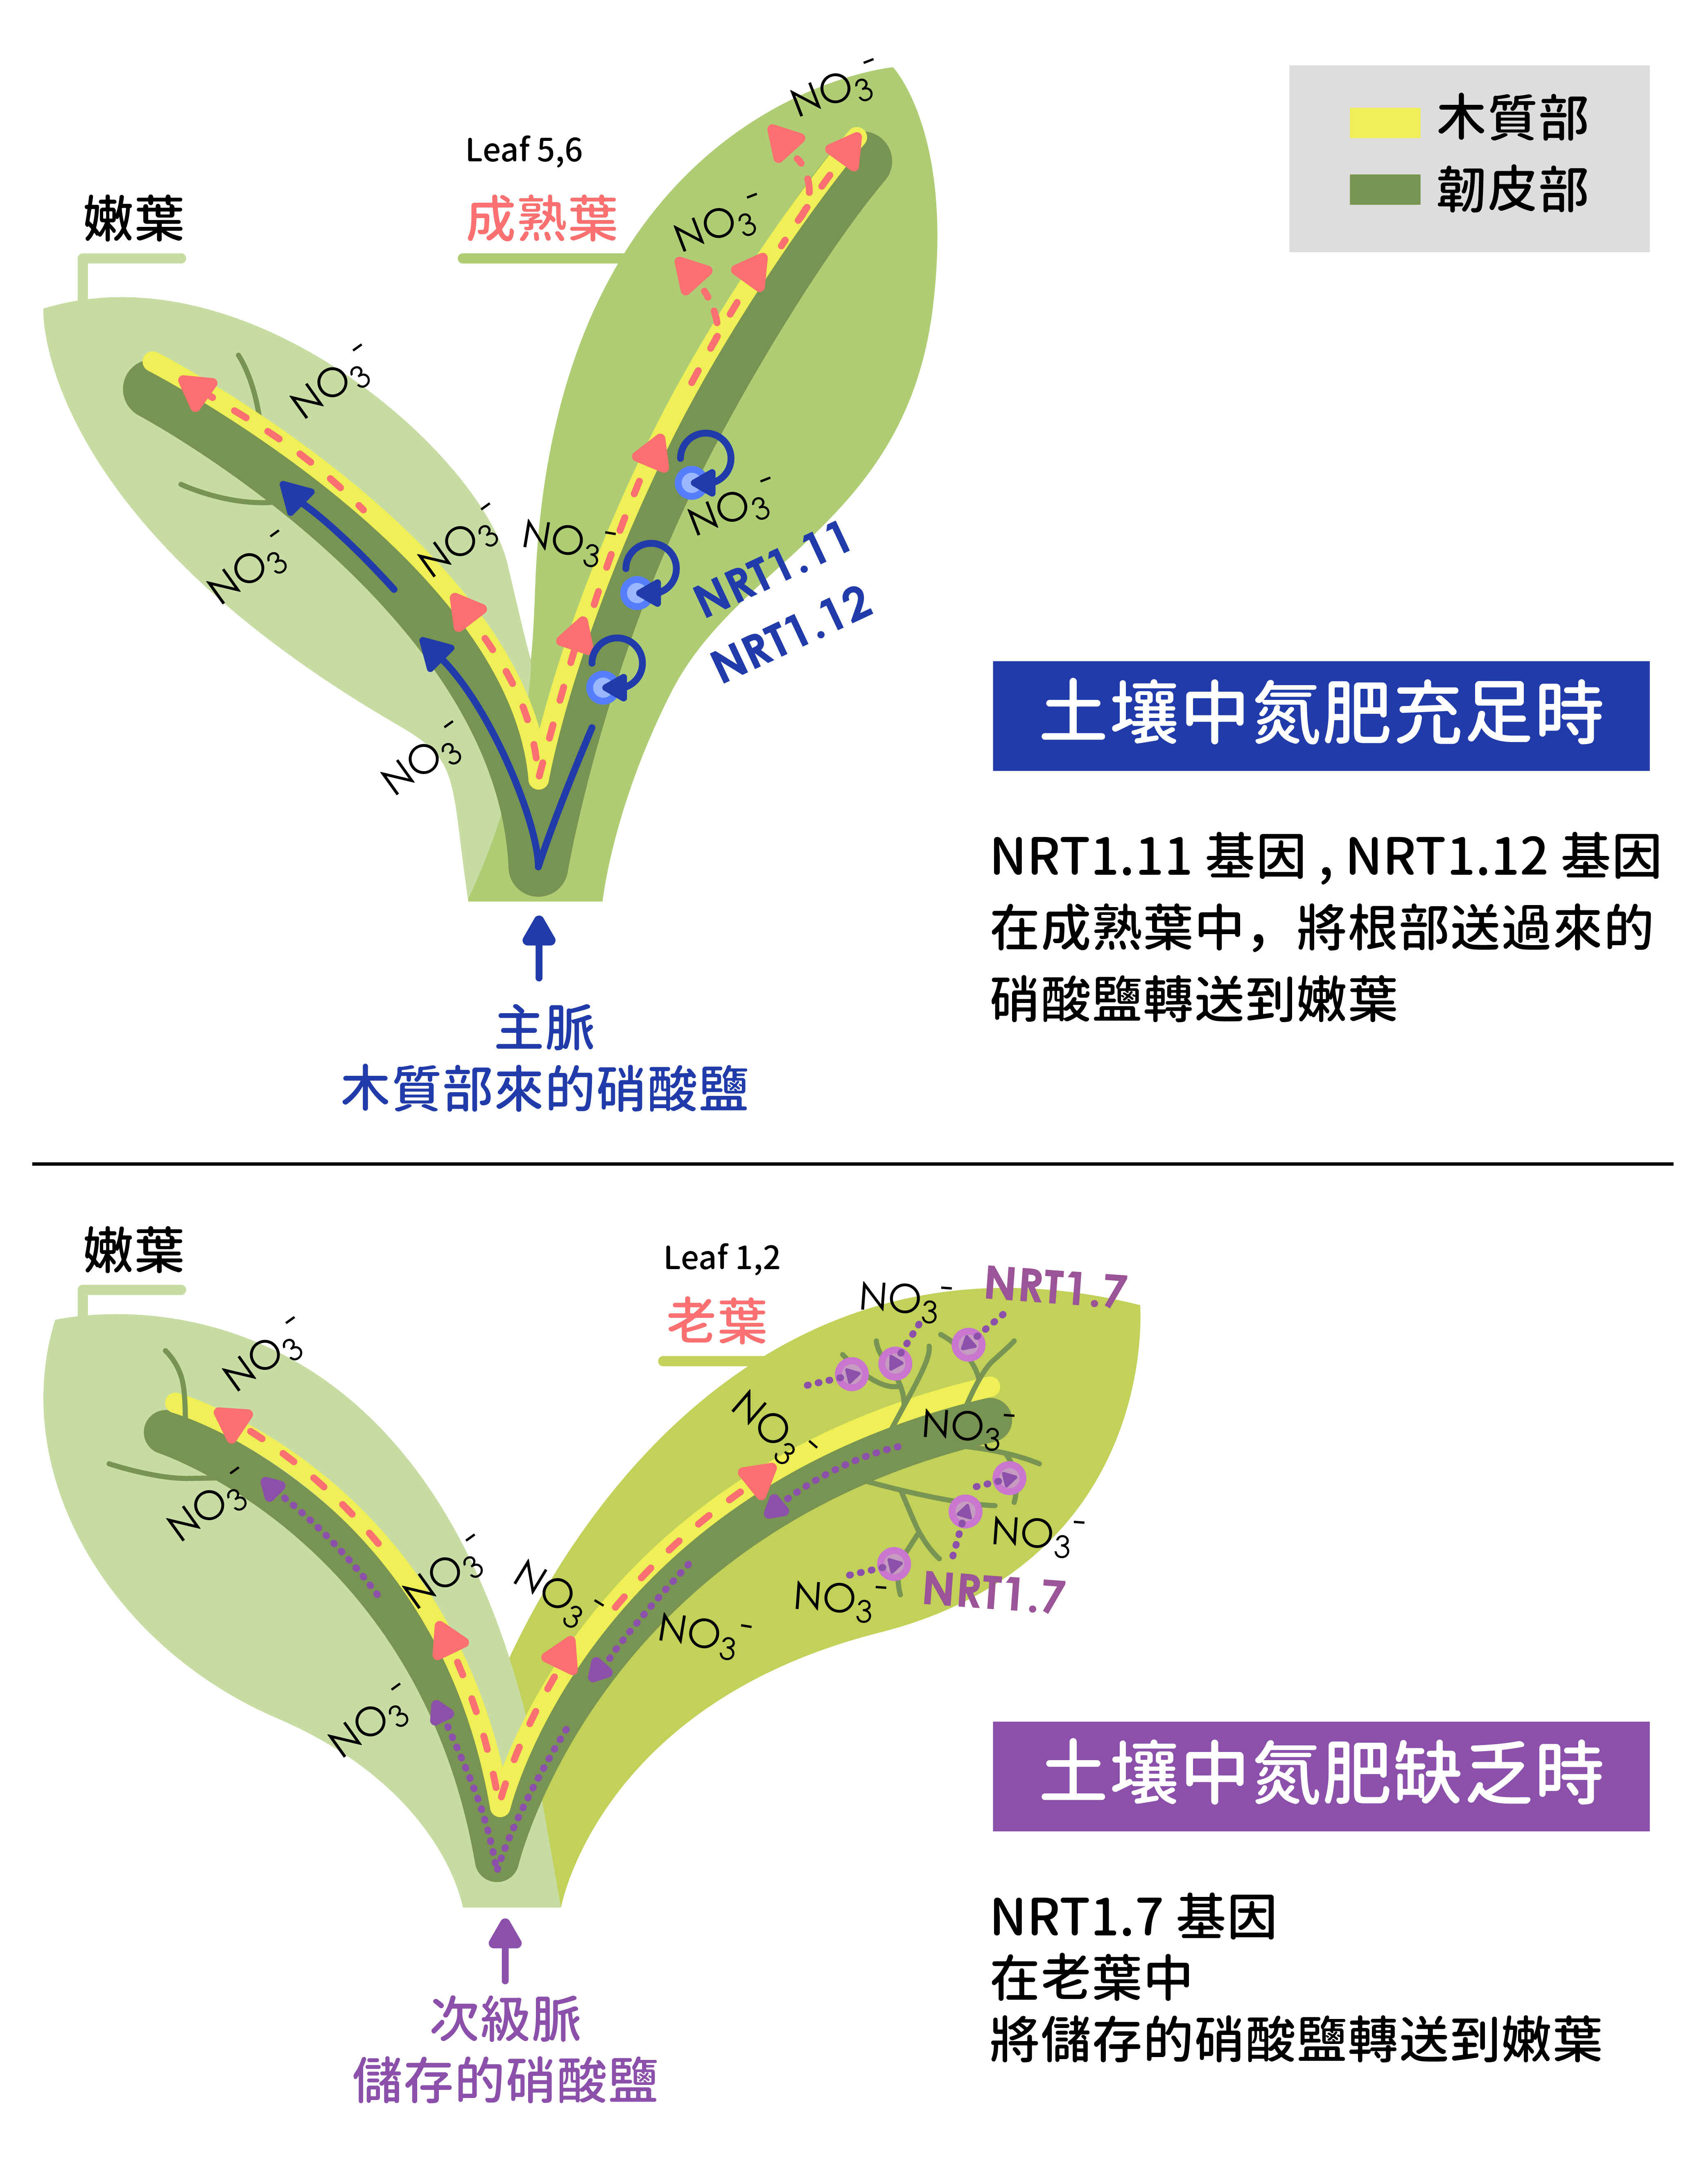 阿拉伯芥中,調控硝酸鹽吸收的基因 NRT1.11, NRT1.12 和 NRT1.7 ,透過不同路徑養護嫩葉。 資料來源│Ya-Yun Wang∗, Yu-Hsuan Cheng∗, Kuo-En Chen and Yi-Fang Tsay (2018) Nitrate Transport, Signaling, and Use Efficiency. Annu. Rev. Plant Biol. 69:27.1–27.38.、S.-C. Fan, C.-S. Lin, P.-K. Hsu, S.-H. Lin, and Y.-F. Tsay* (2009) The Arabidopsis Nitrate Transporter NRT1.7, Expressed in Phloem, Is Responsible for Source-to-Sink Remobilization of Nitrate. Plant Cell 21: 2750–2761.